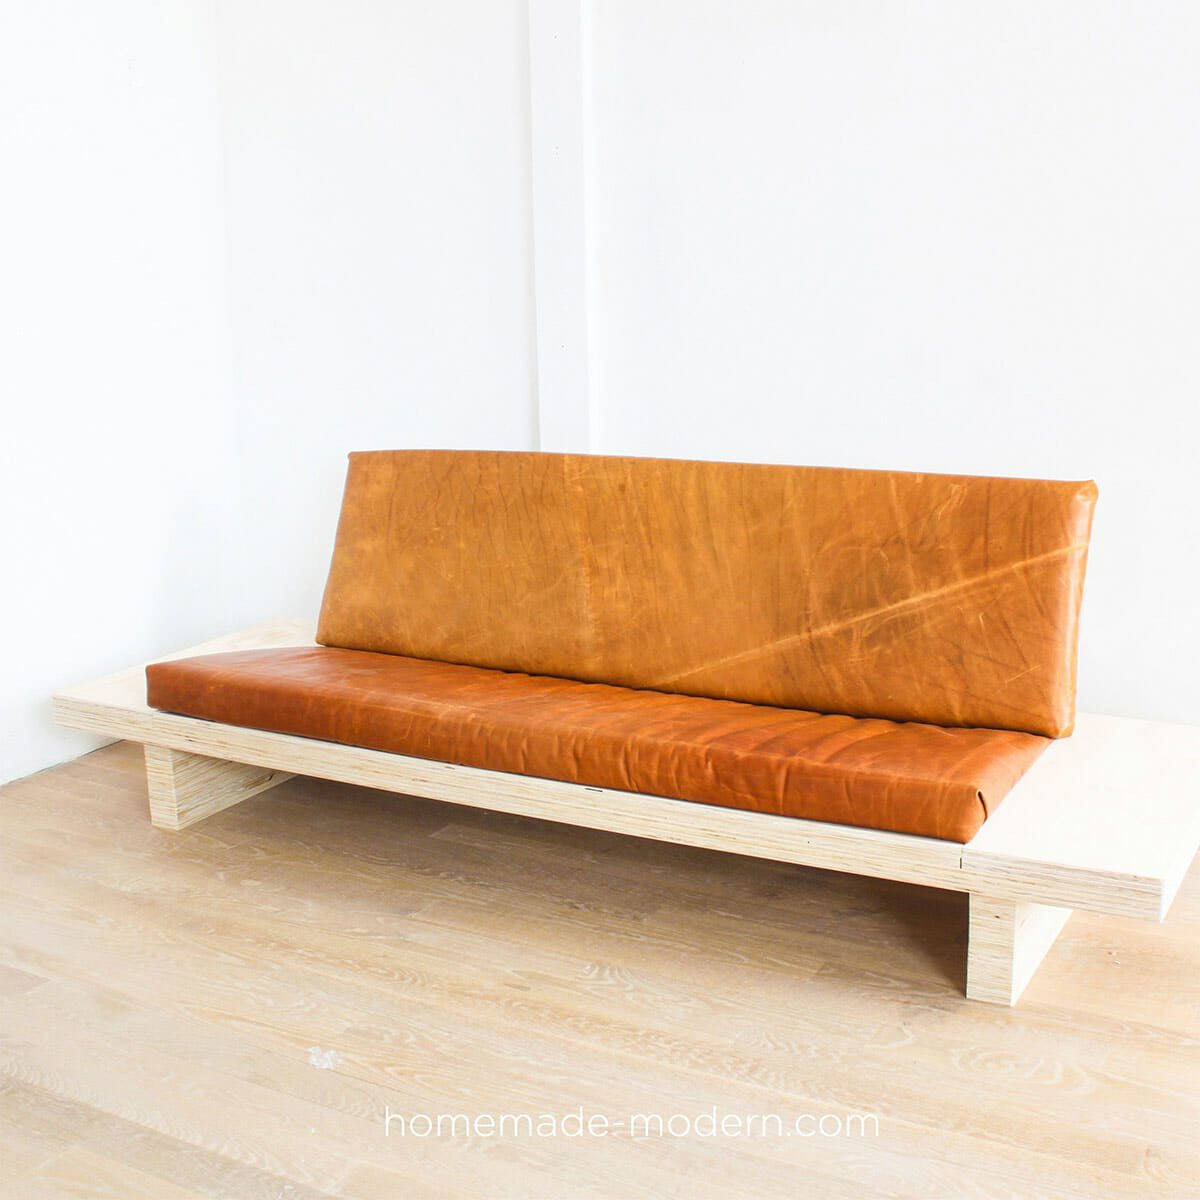 DIY Modern Plywood Sofa